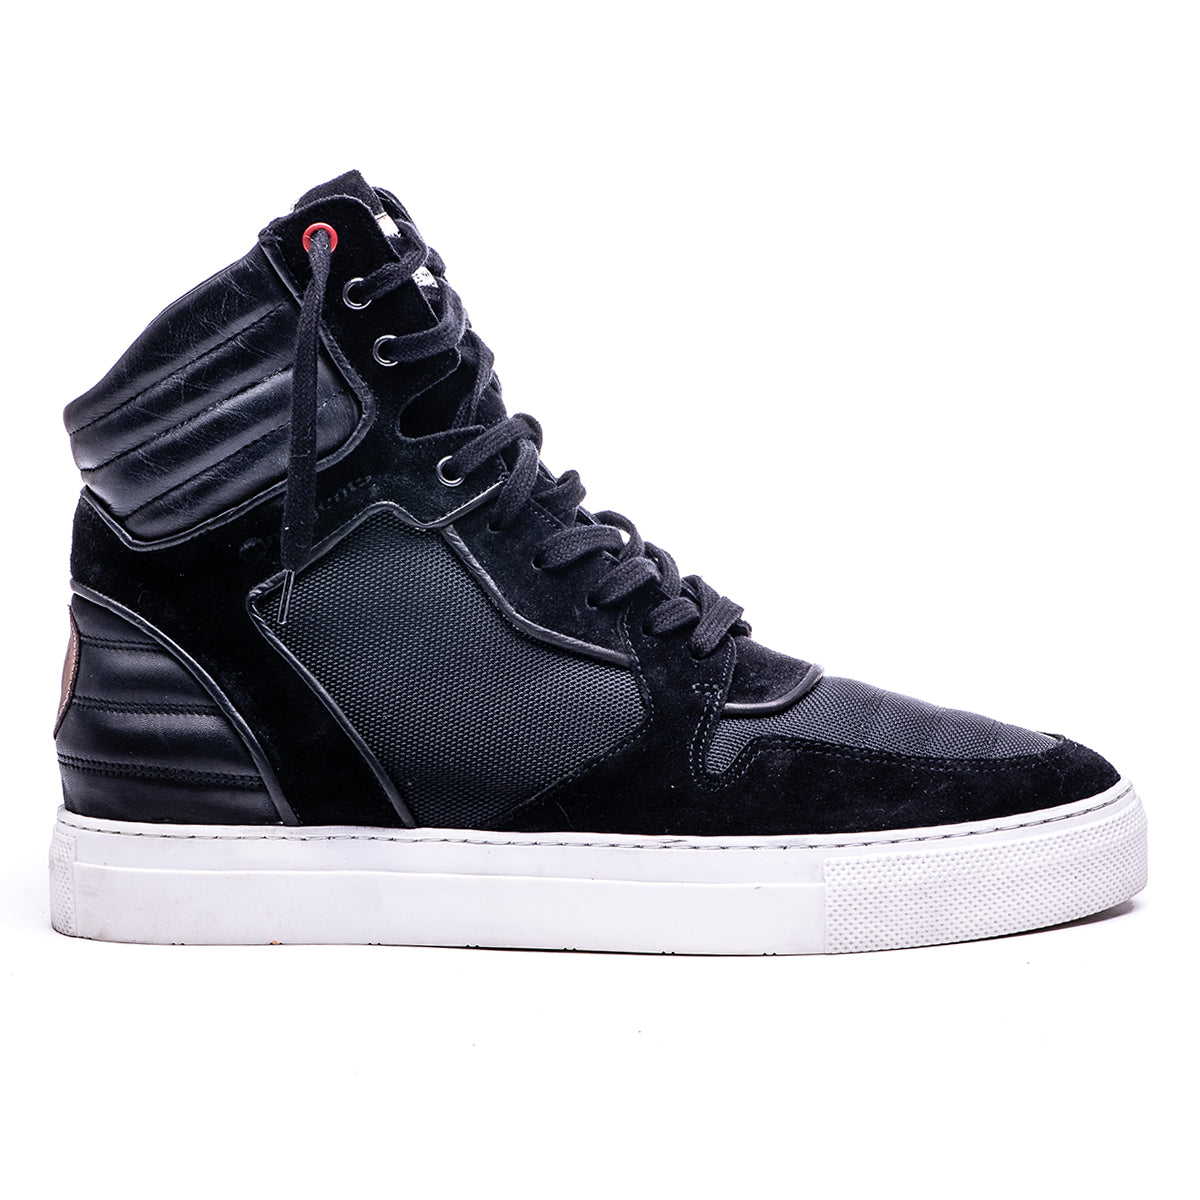 MOJA HIGH TOP BOOT - BLACK